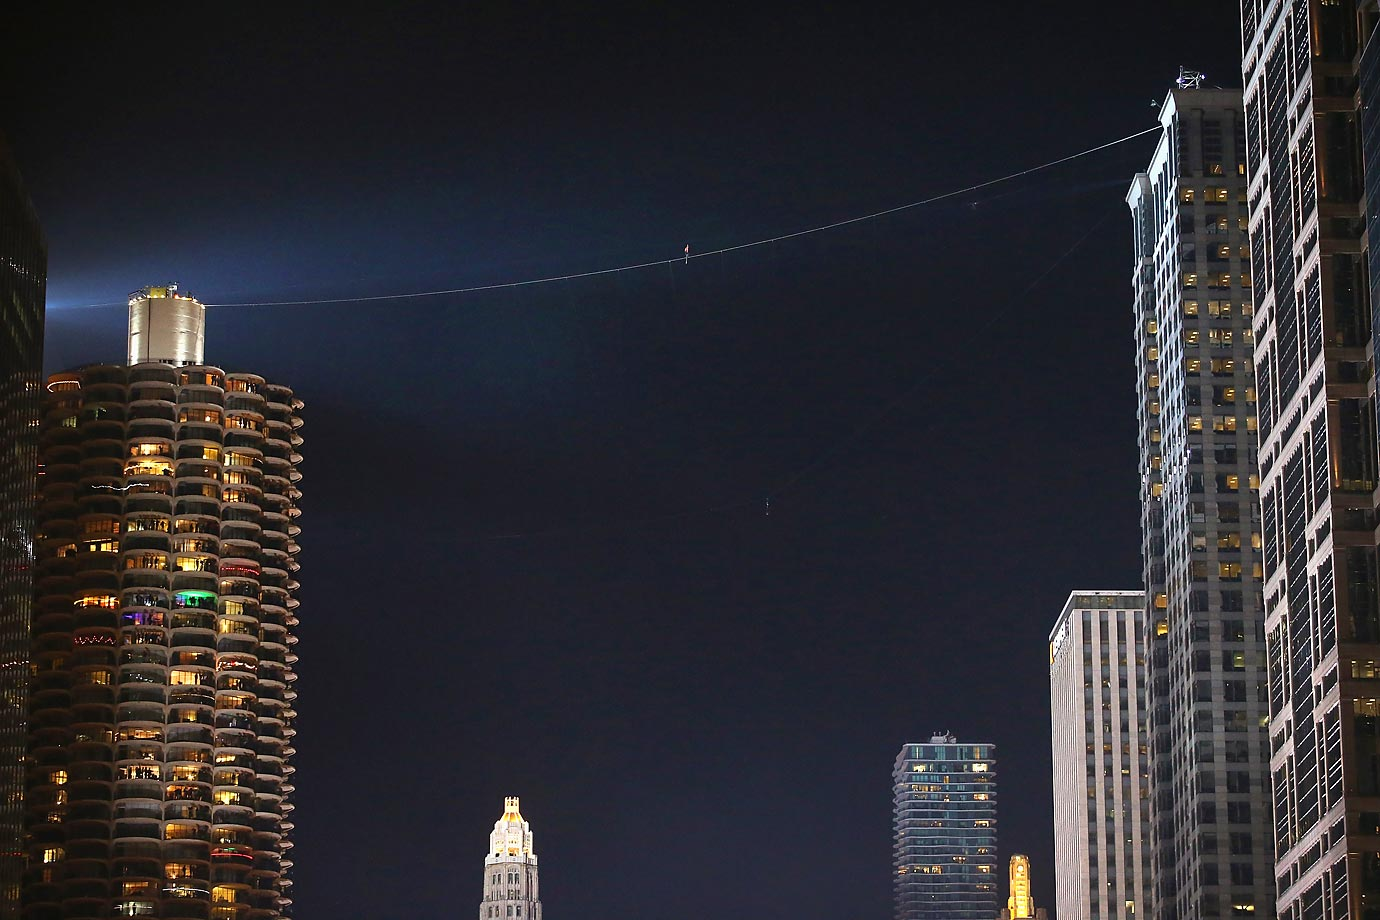 Tightrope walker Nik Wallenda (the tiny red dot you can see in the dark sky) walks from Marina City's west tower to the top of the 671-foot-tall Leo Burnett building in Chicago. The walk, which spanned 454 feet, is the highest and steepest skyscraper walk in the history of the Flying Wallenda family.